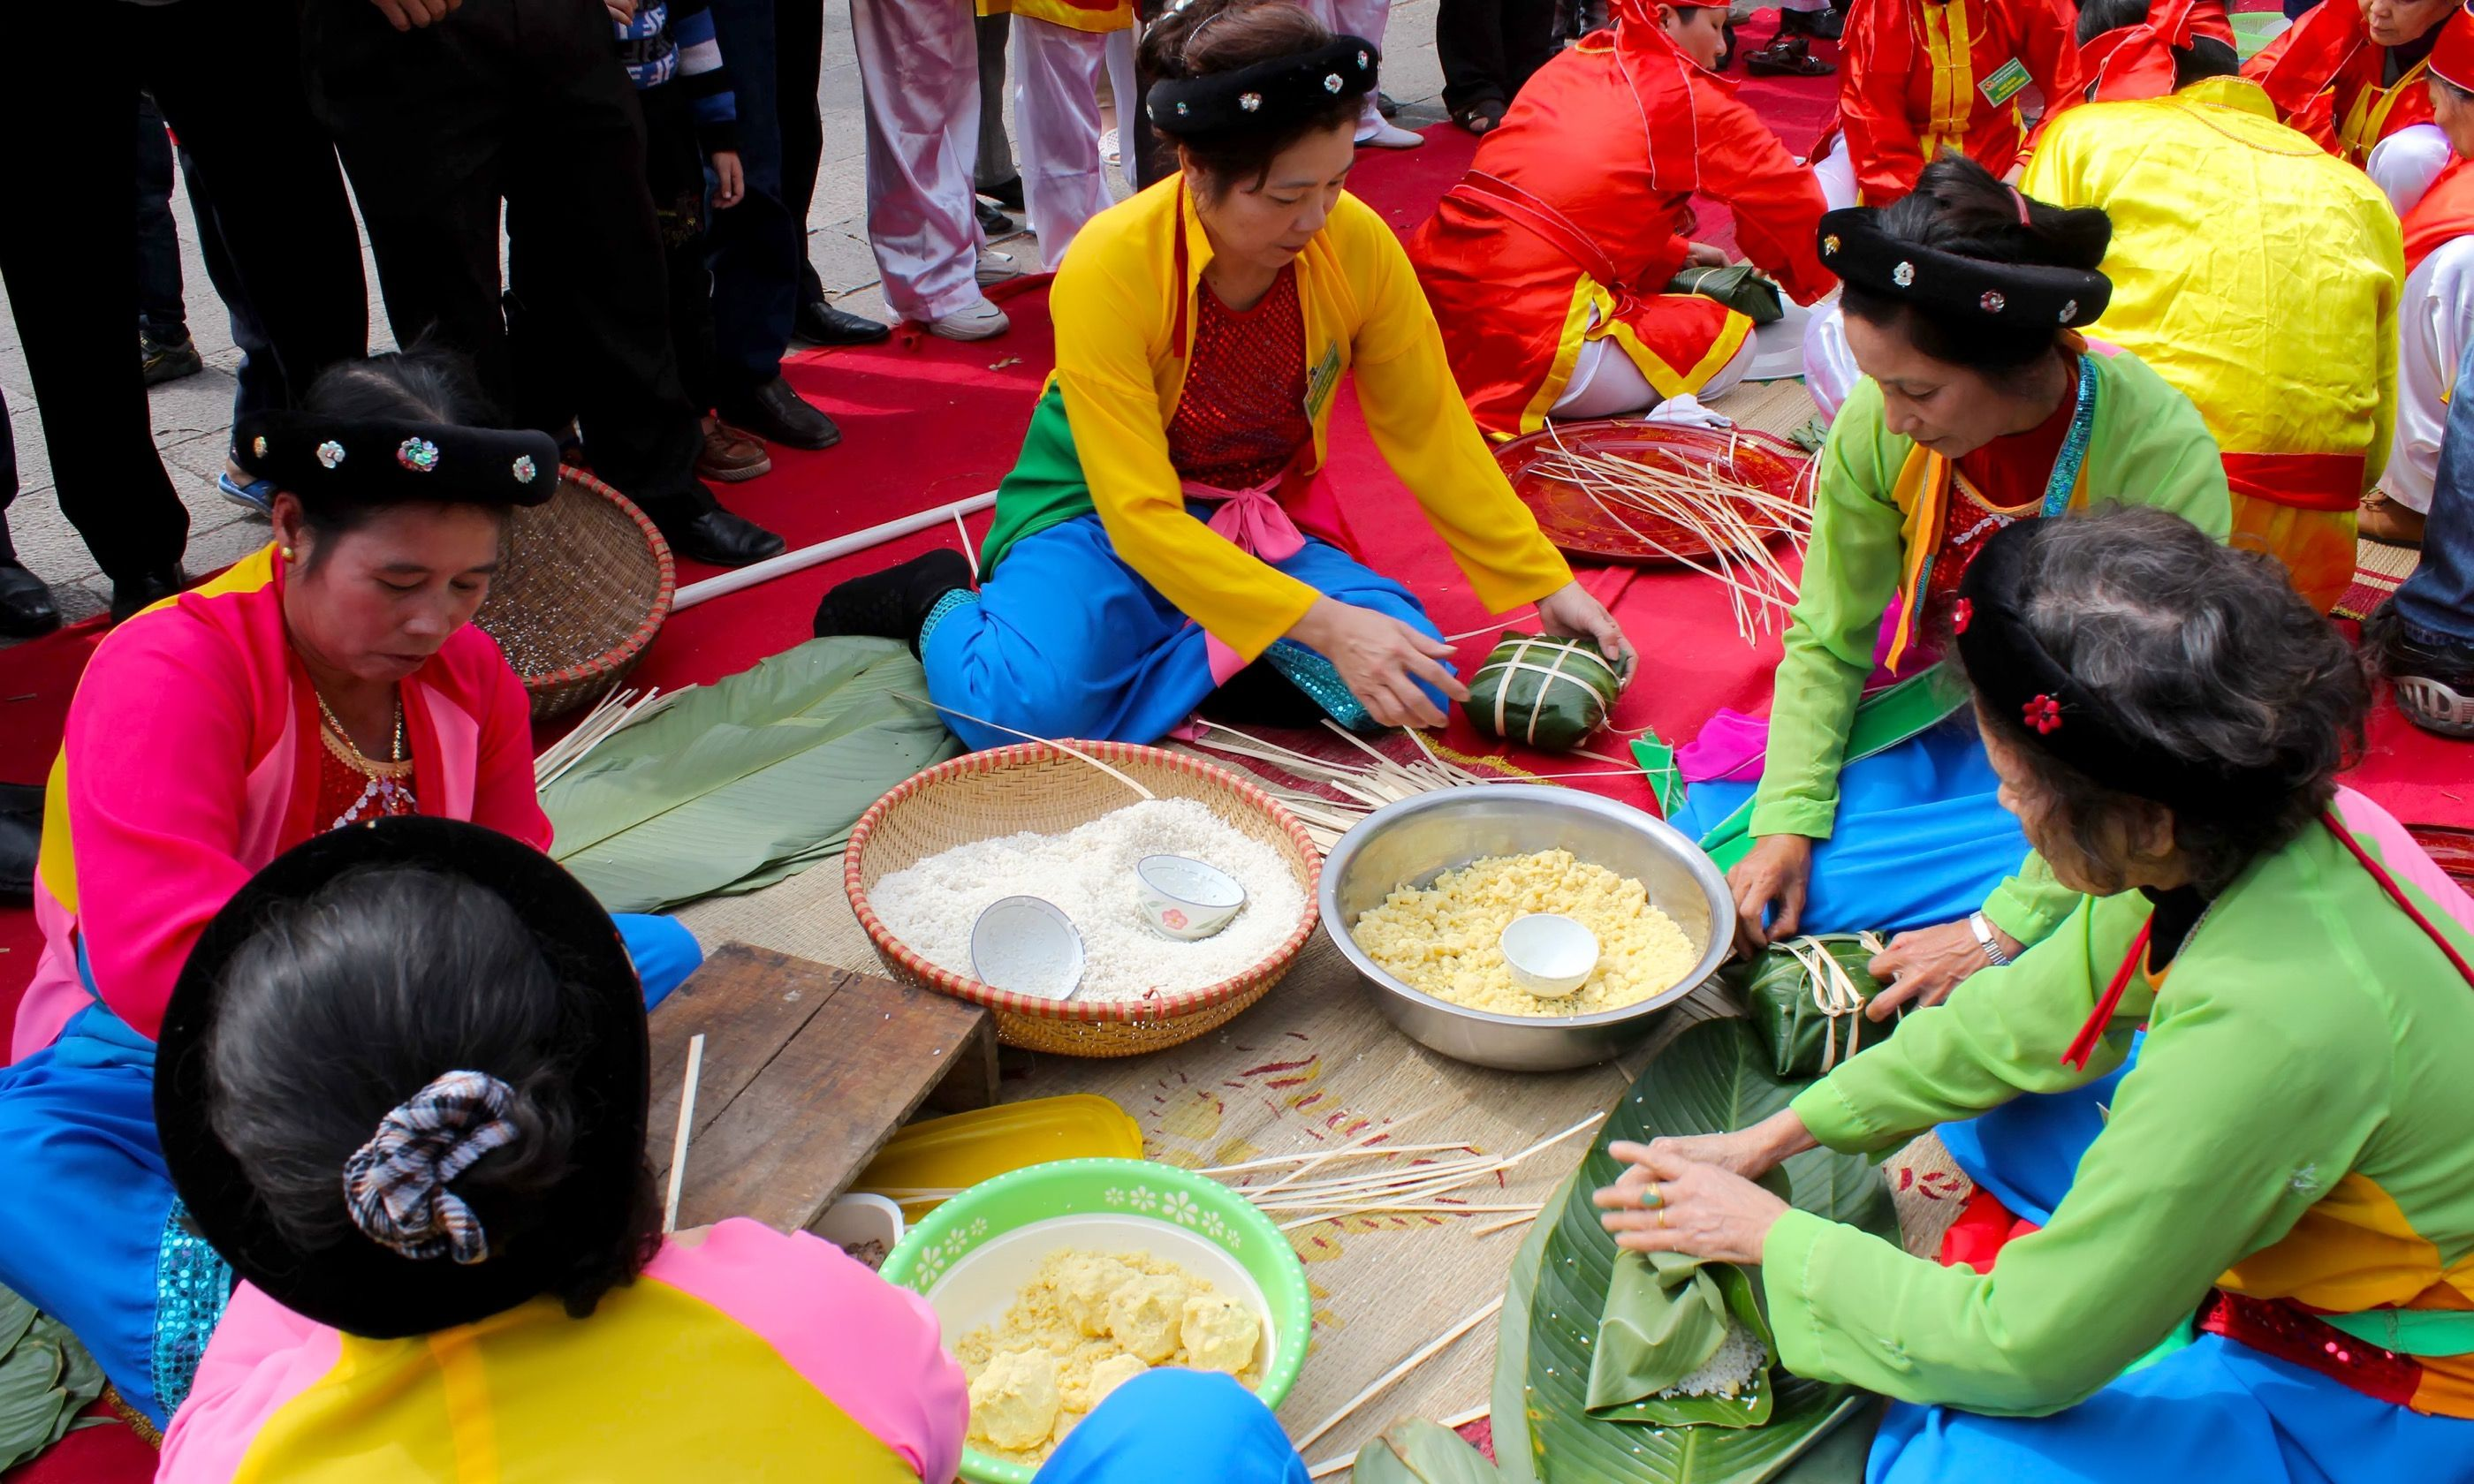 Preparing traditional rice cakes (Dreamstime)